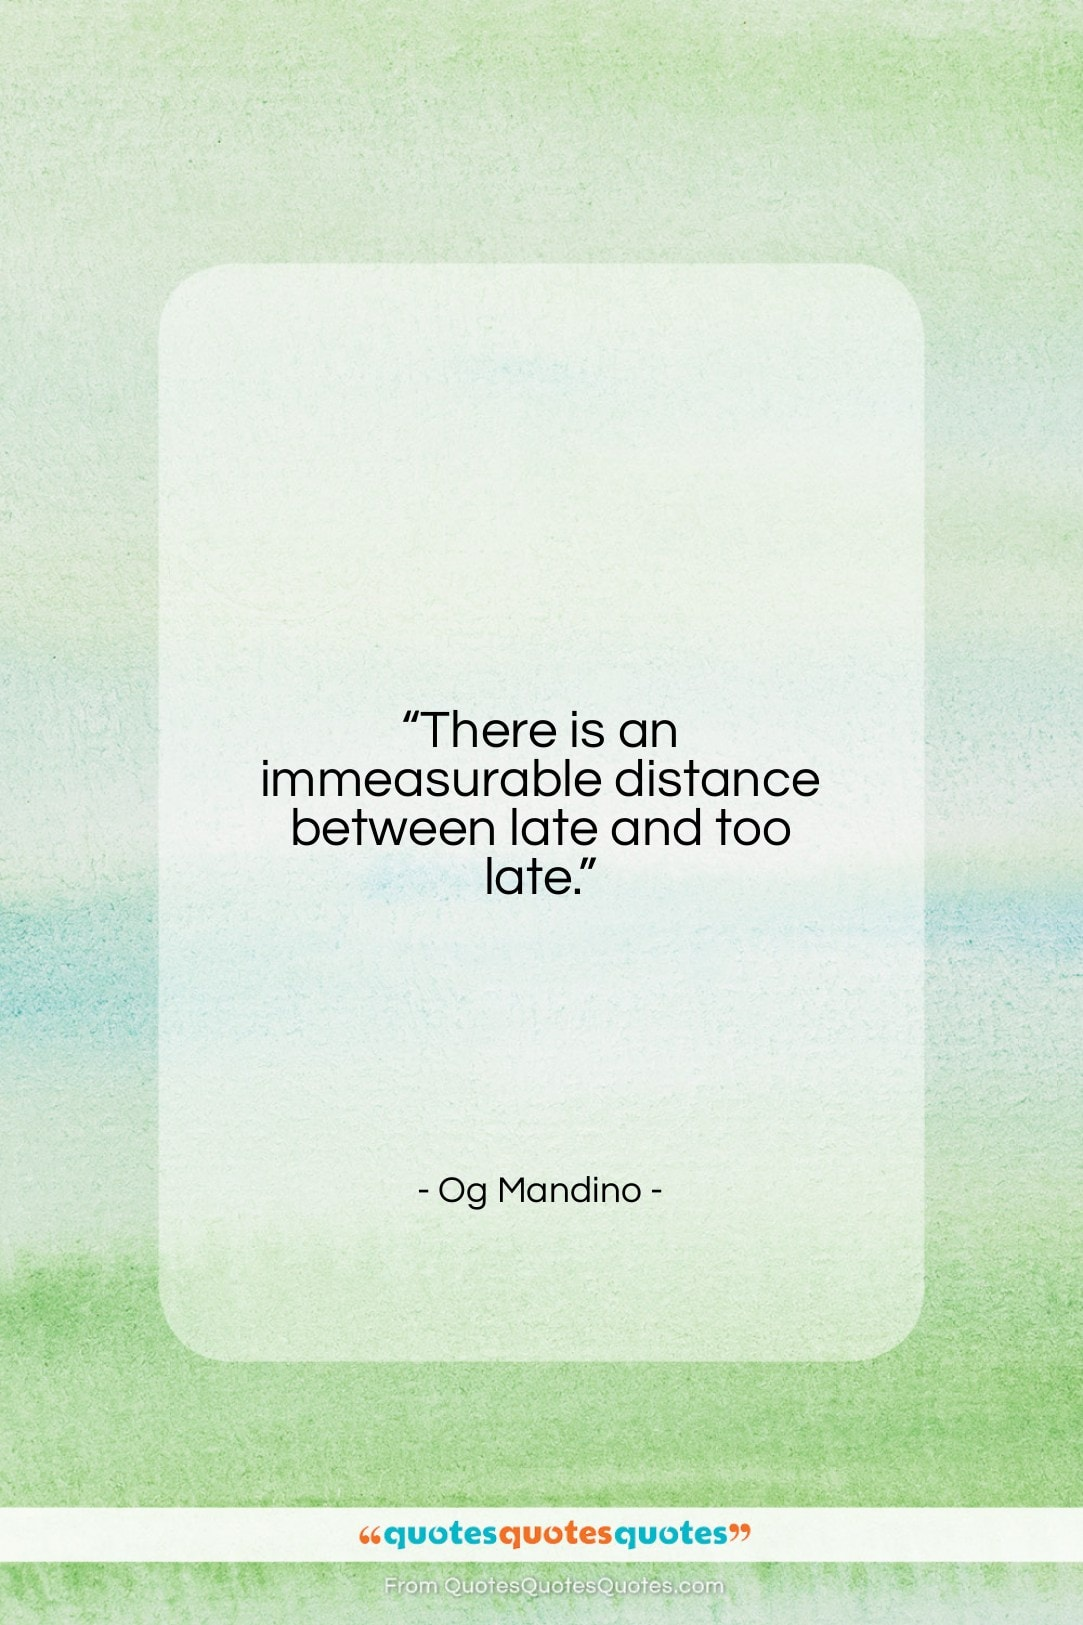 """Og Mandino quote: """"There is an immeasurable distance between late…""""- at QuotesQuotesQuotes.com"""